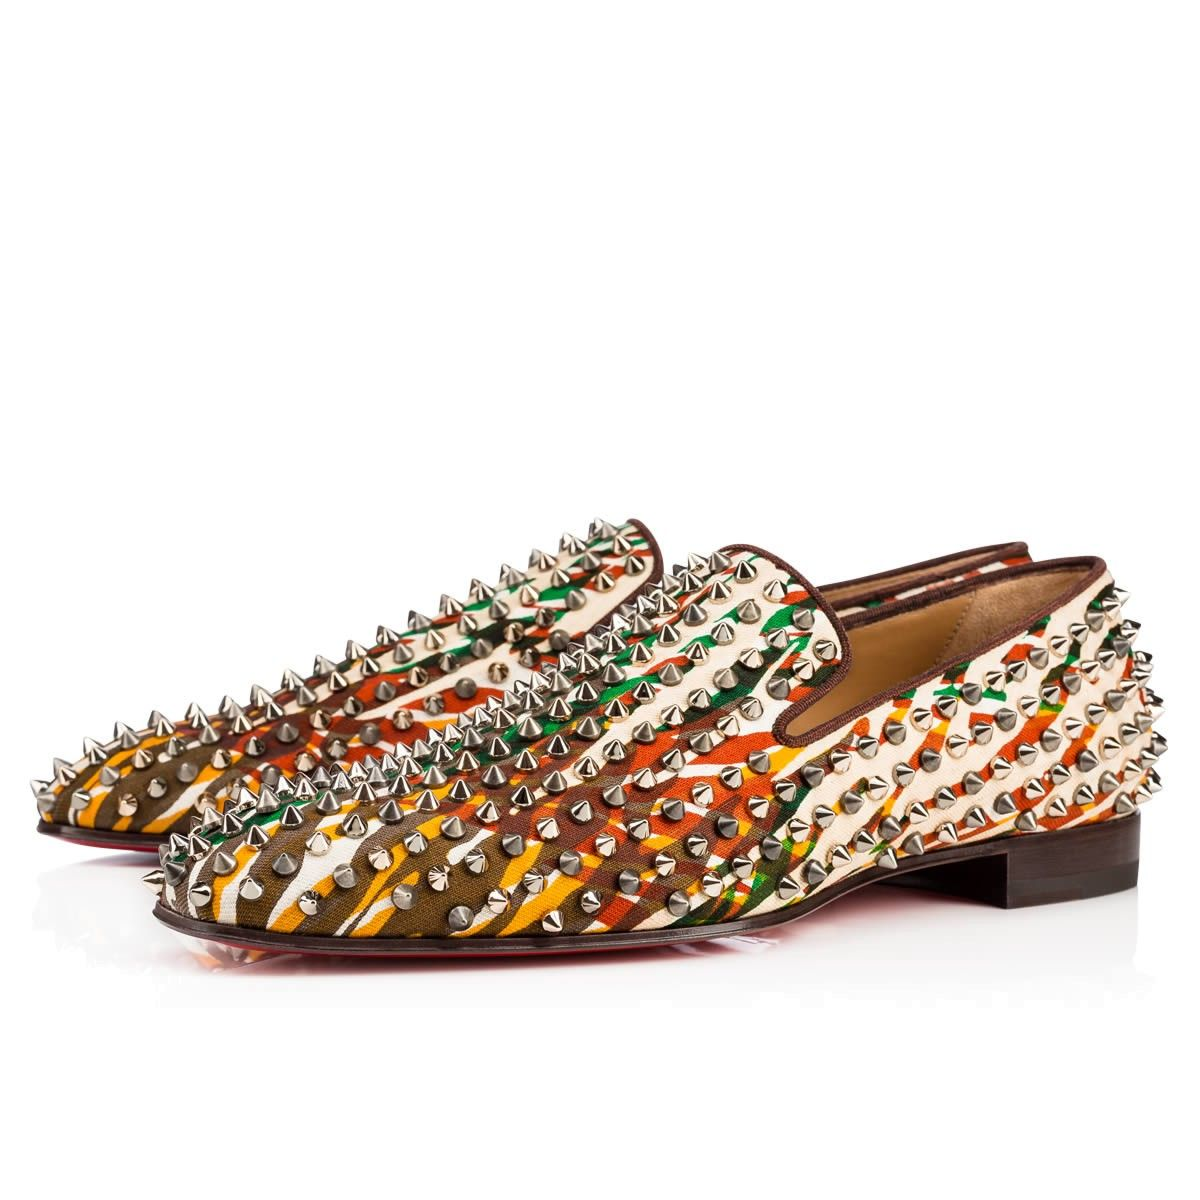 10cfaa3ff2d4 CHRISTIAN LOUBOUTIN Dandelion spikes flat canevas jungle gg cotton - Men  Shoes - Christian Louboutin.  christianlouboutin  shoes